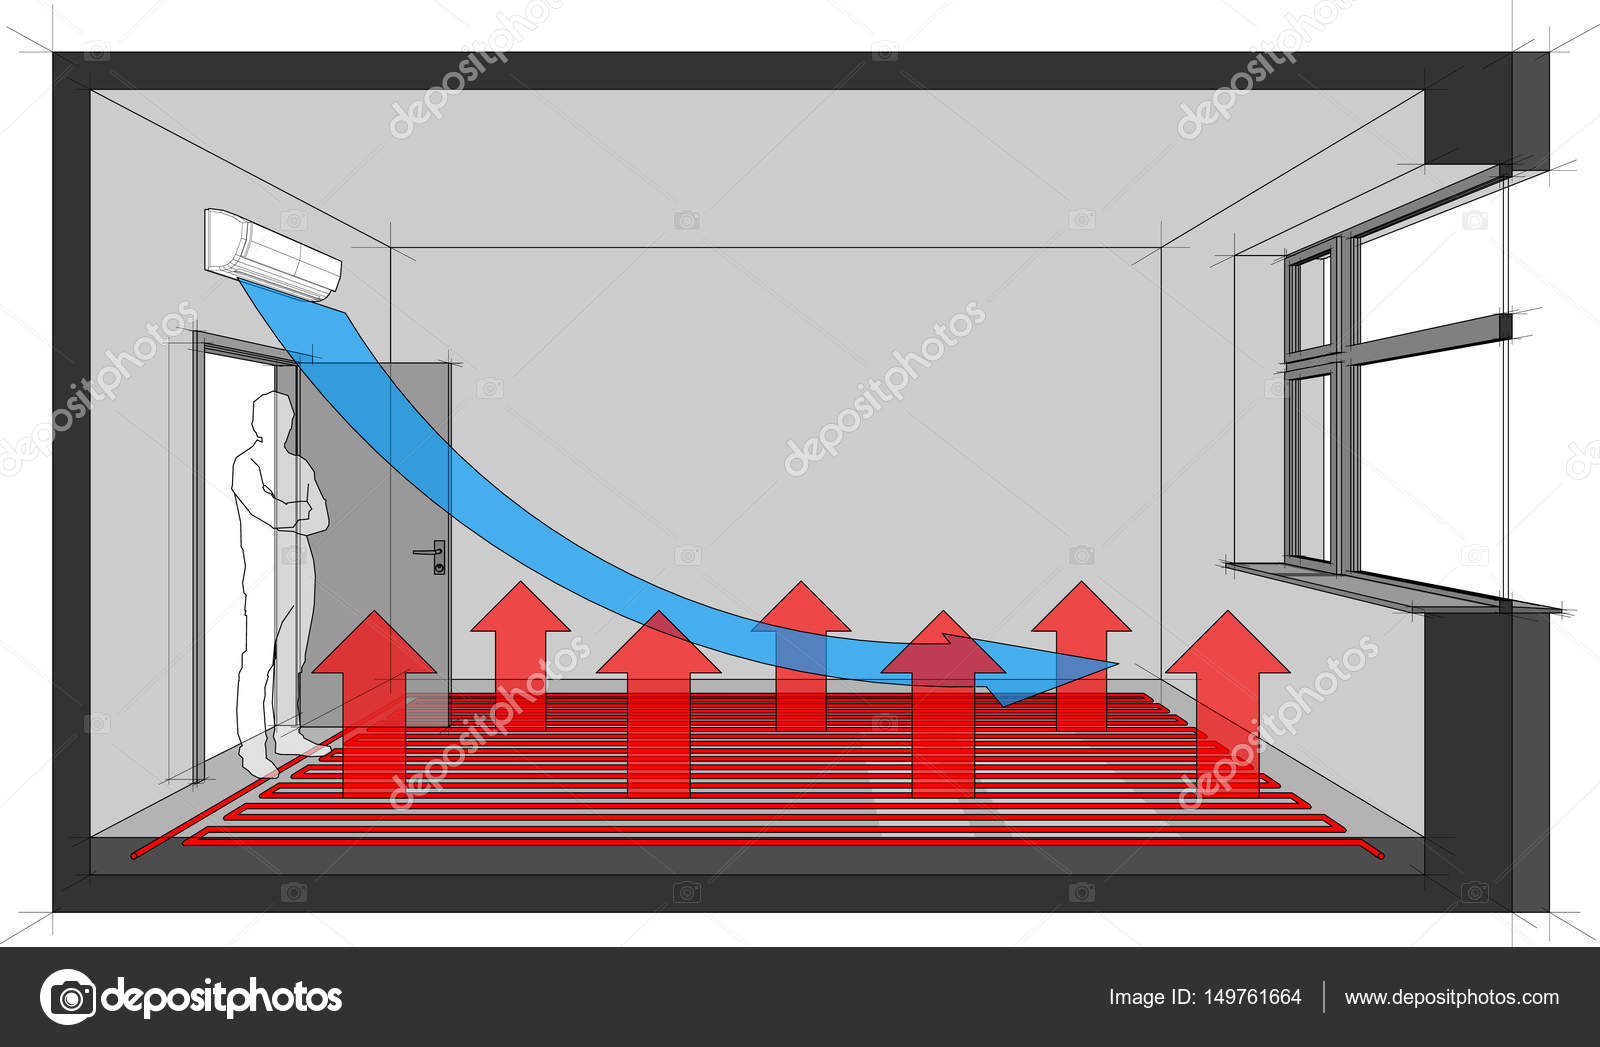 Diagram Of A Room Heated With Floor Heating And With Wall Mounted Air  Conditioner U2014 Vector By Valigursky